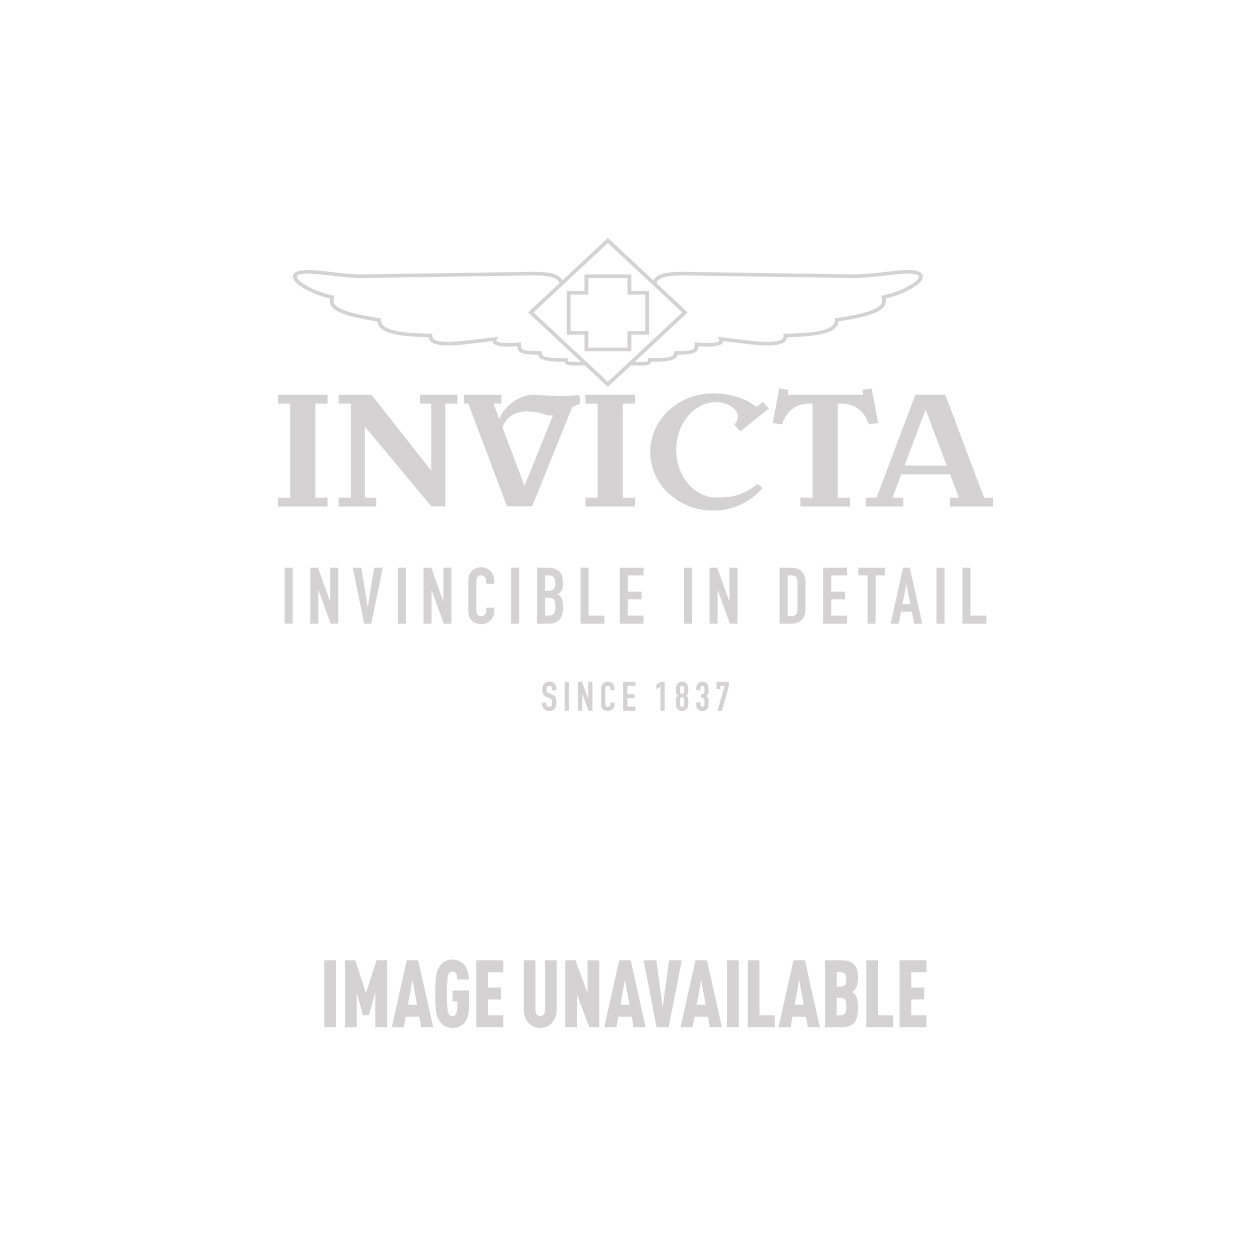 Invicta S1 Rally Quartz Watch - Stainless Steel case Stainless Steel band - Model 20089